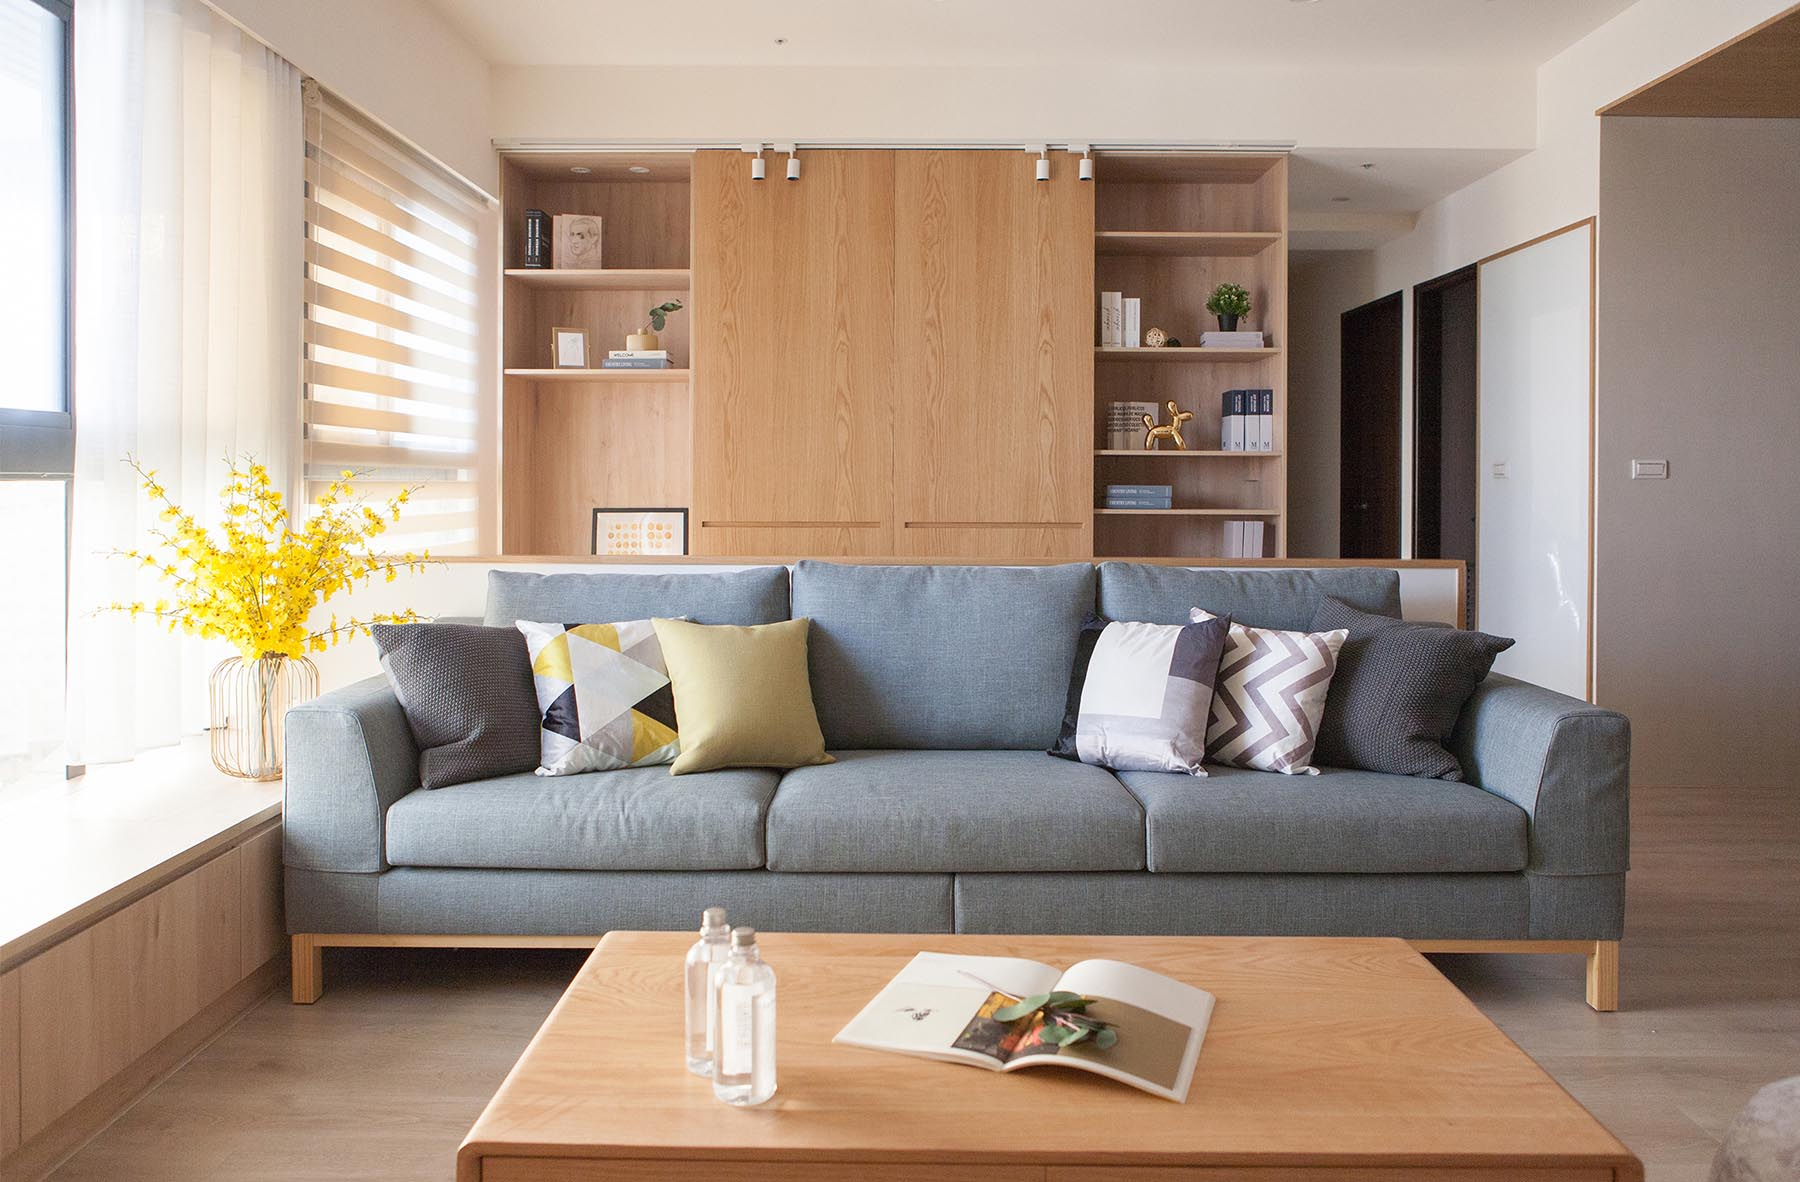 A contemporary living room with a light gray couch and wood shelving.